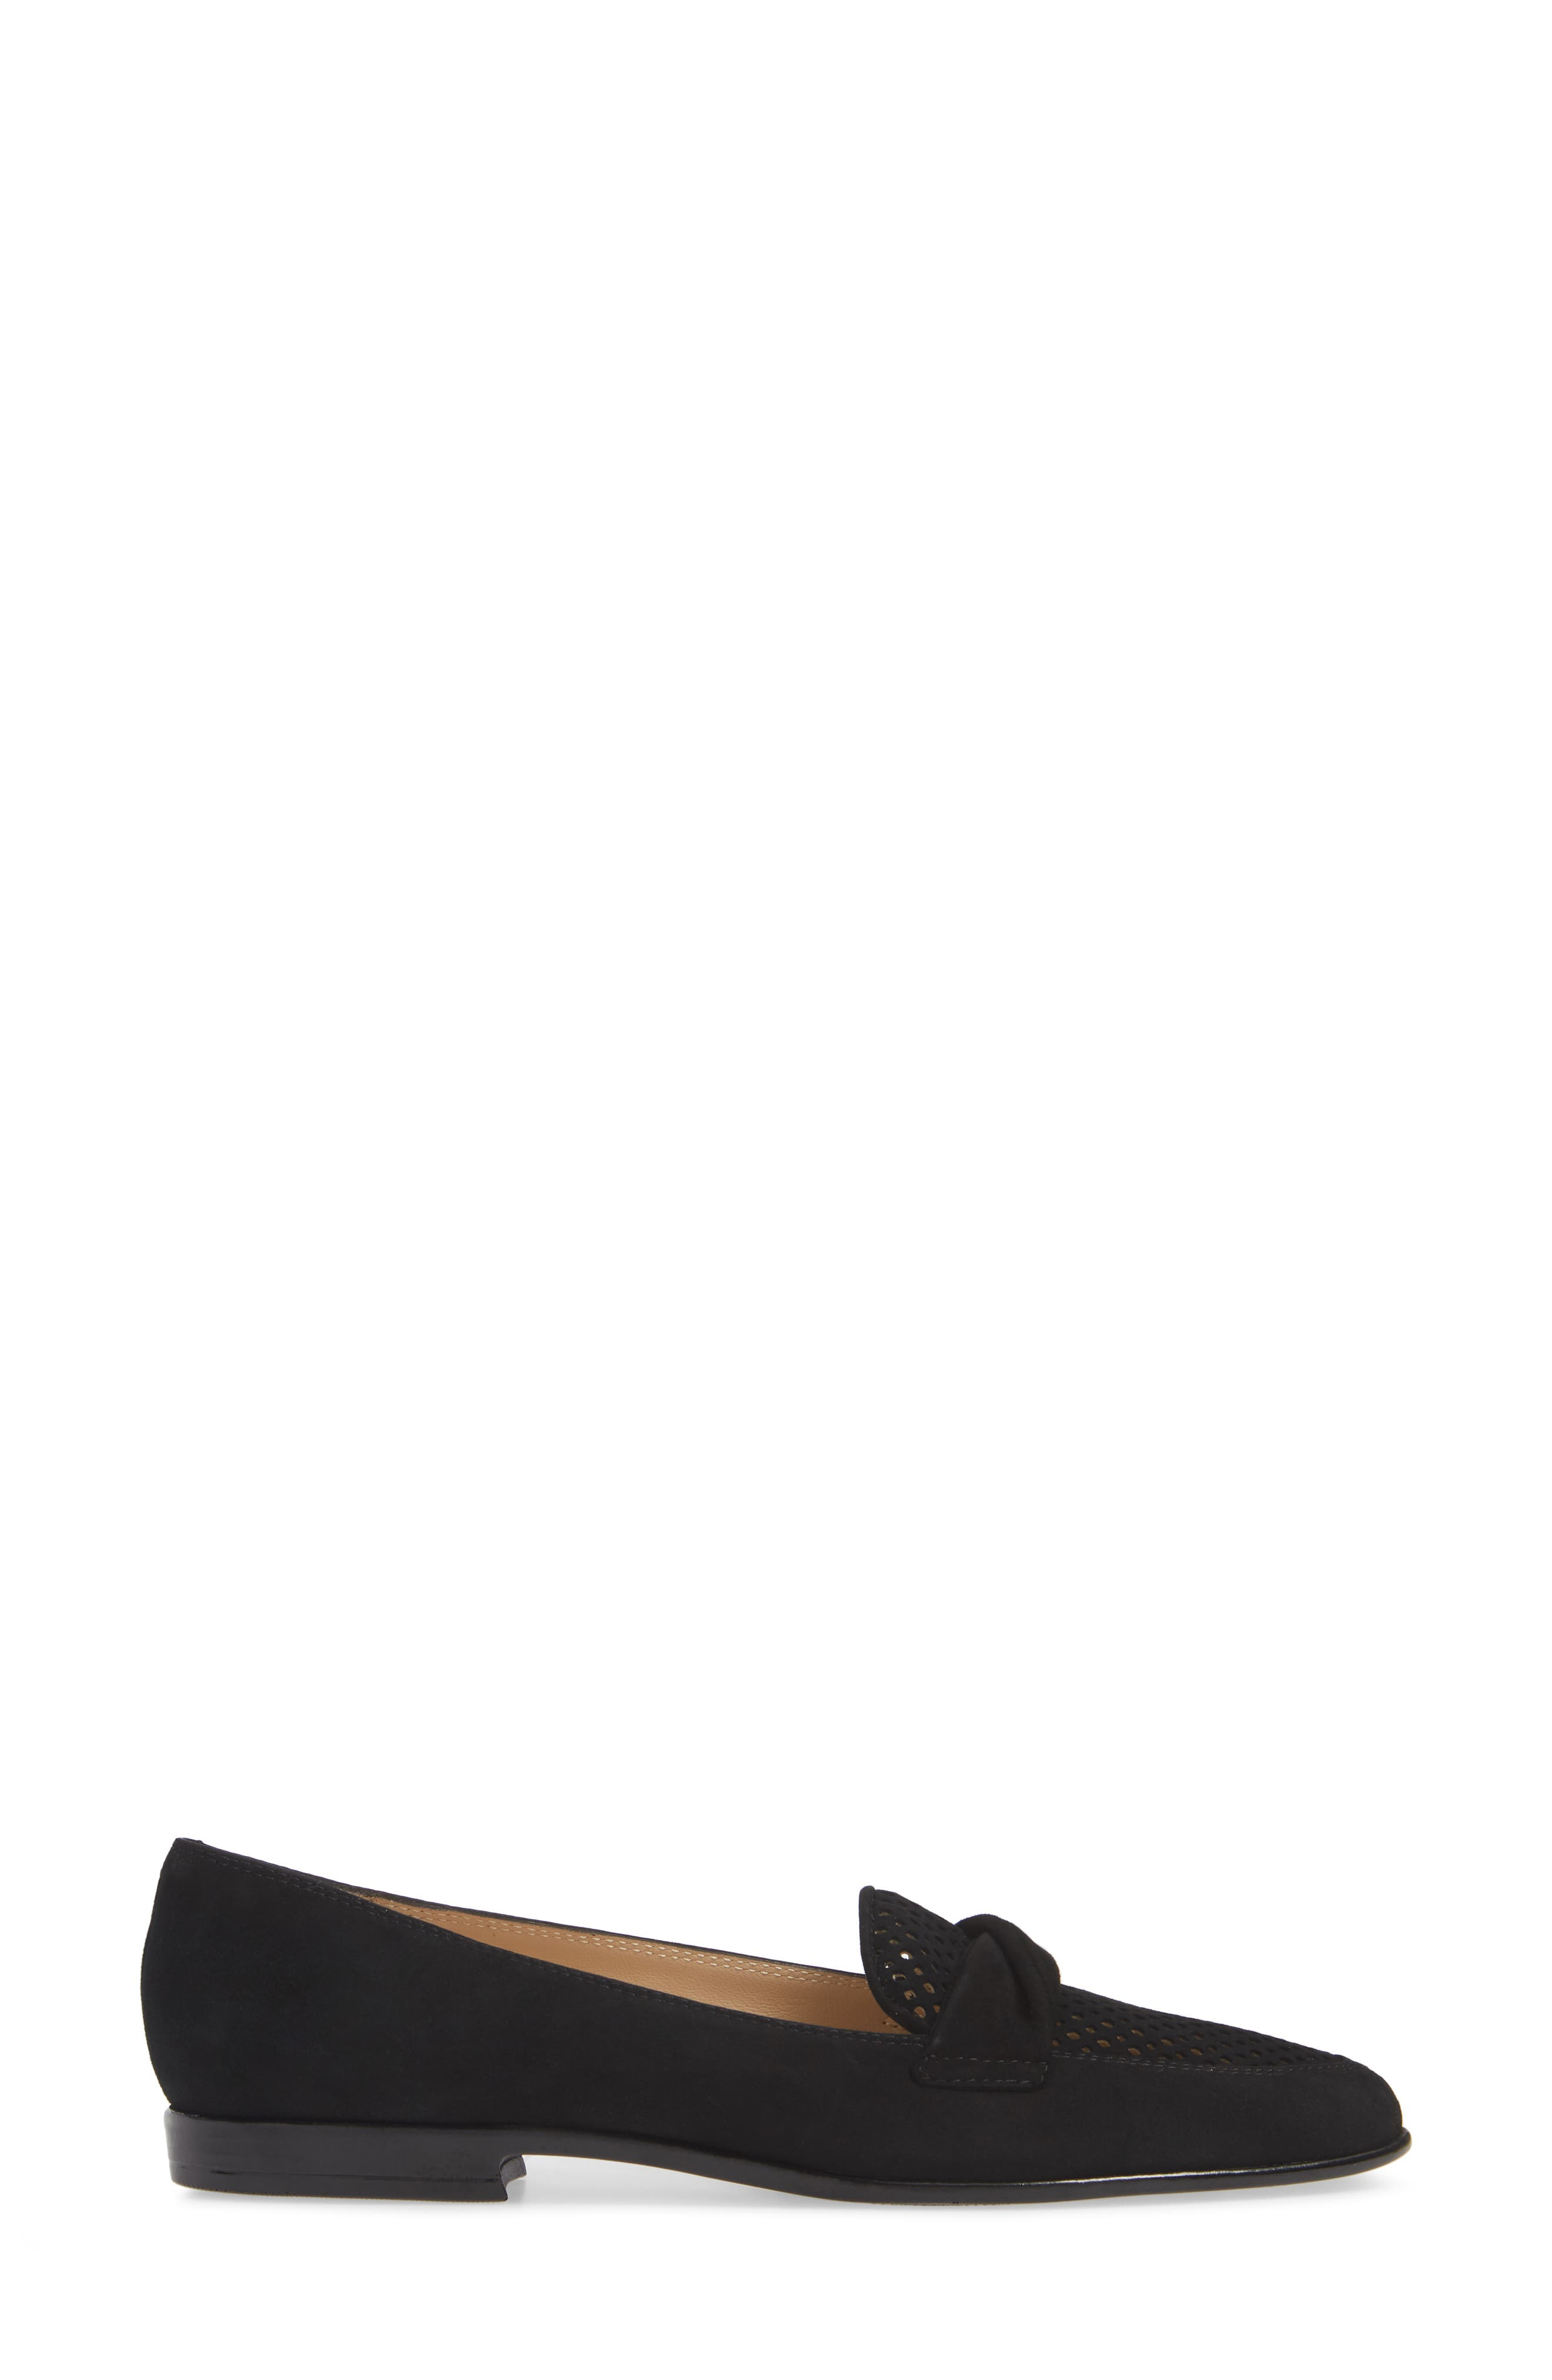 AMALFI BY RANGONI,                             Osimo X Perforated Loafer,                             Alternate thumbnail 3, color,                             BLACK SUEDE